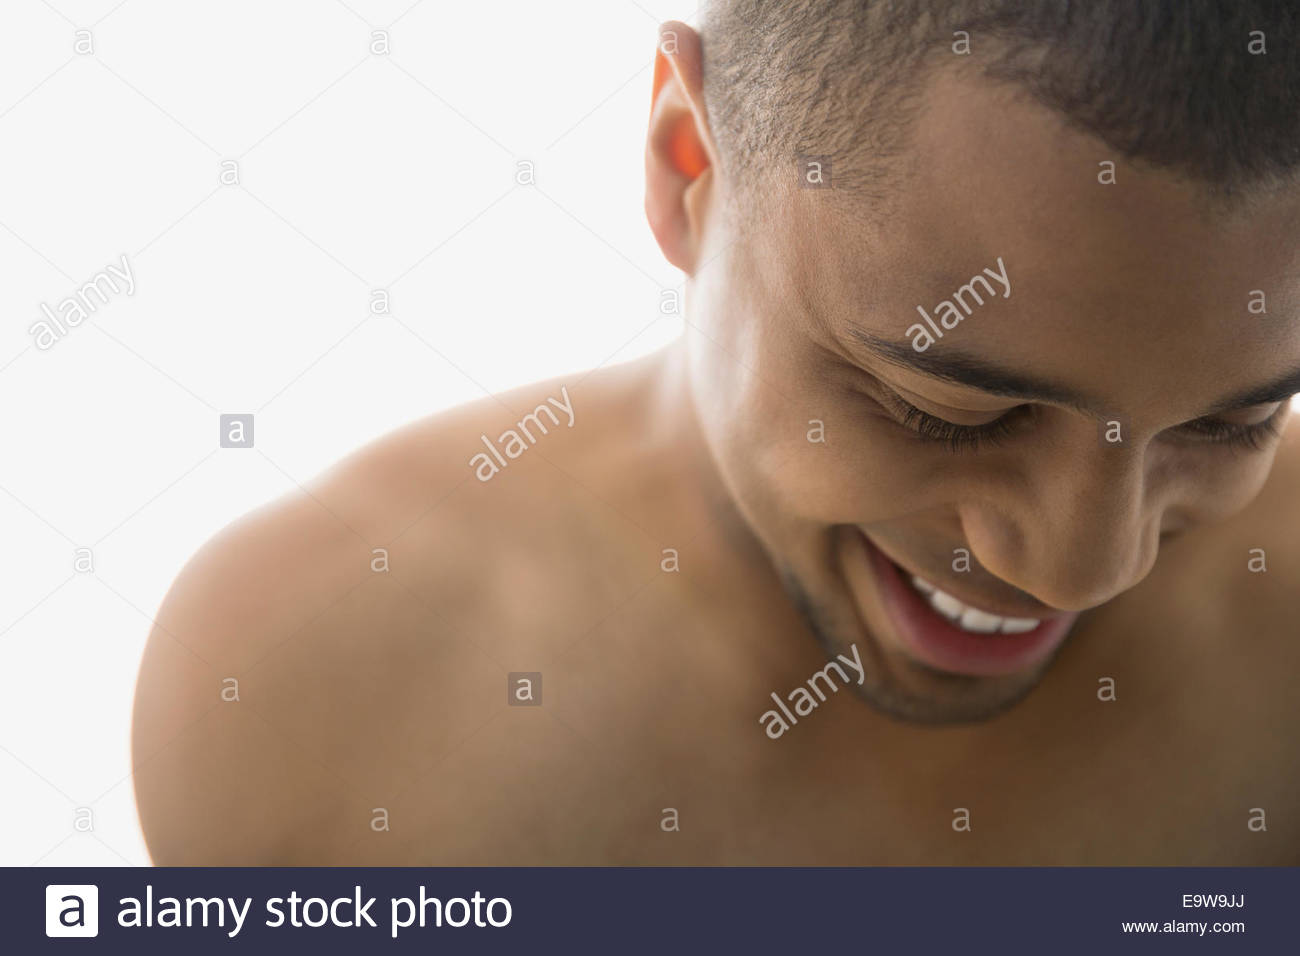 Close up of bare chested man looking down - Stock Image